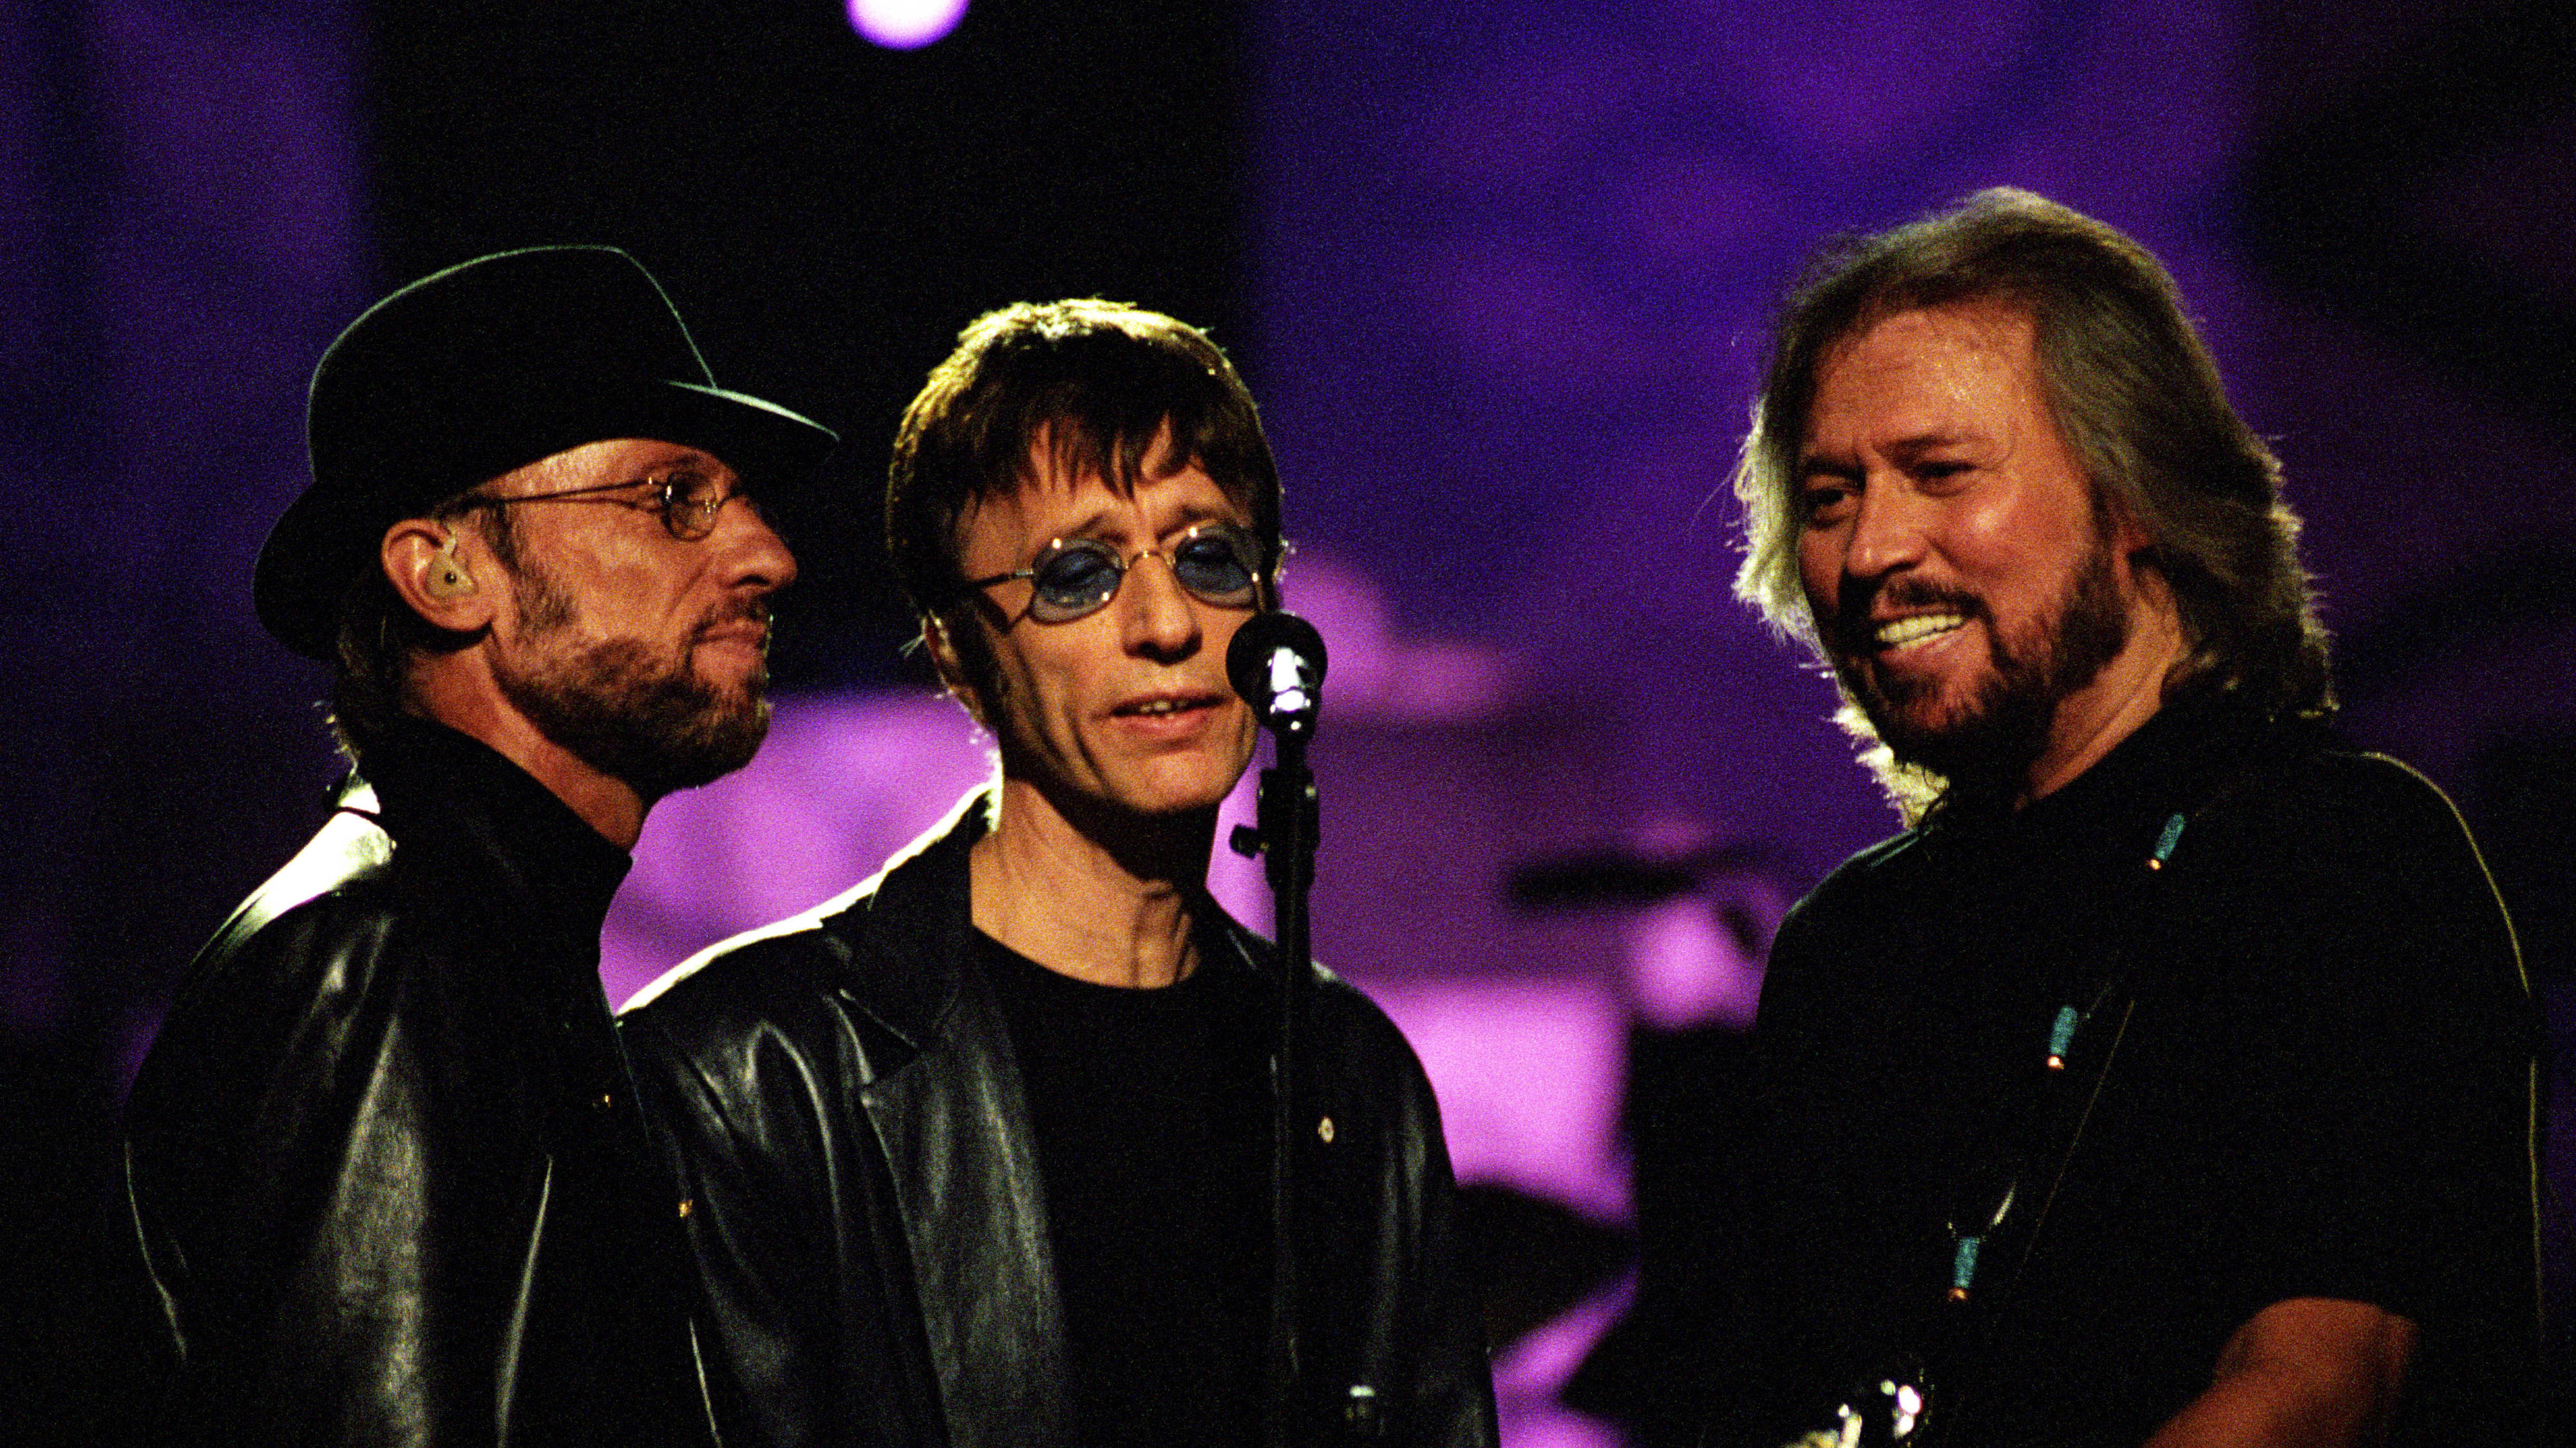 Remembering The Last Time The Bee Gees Performed Live